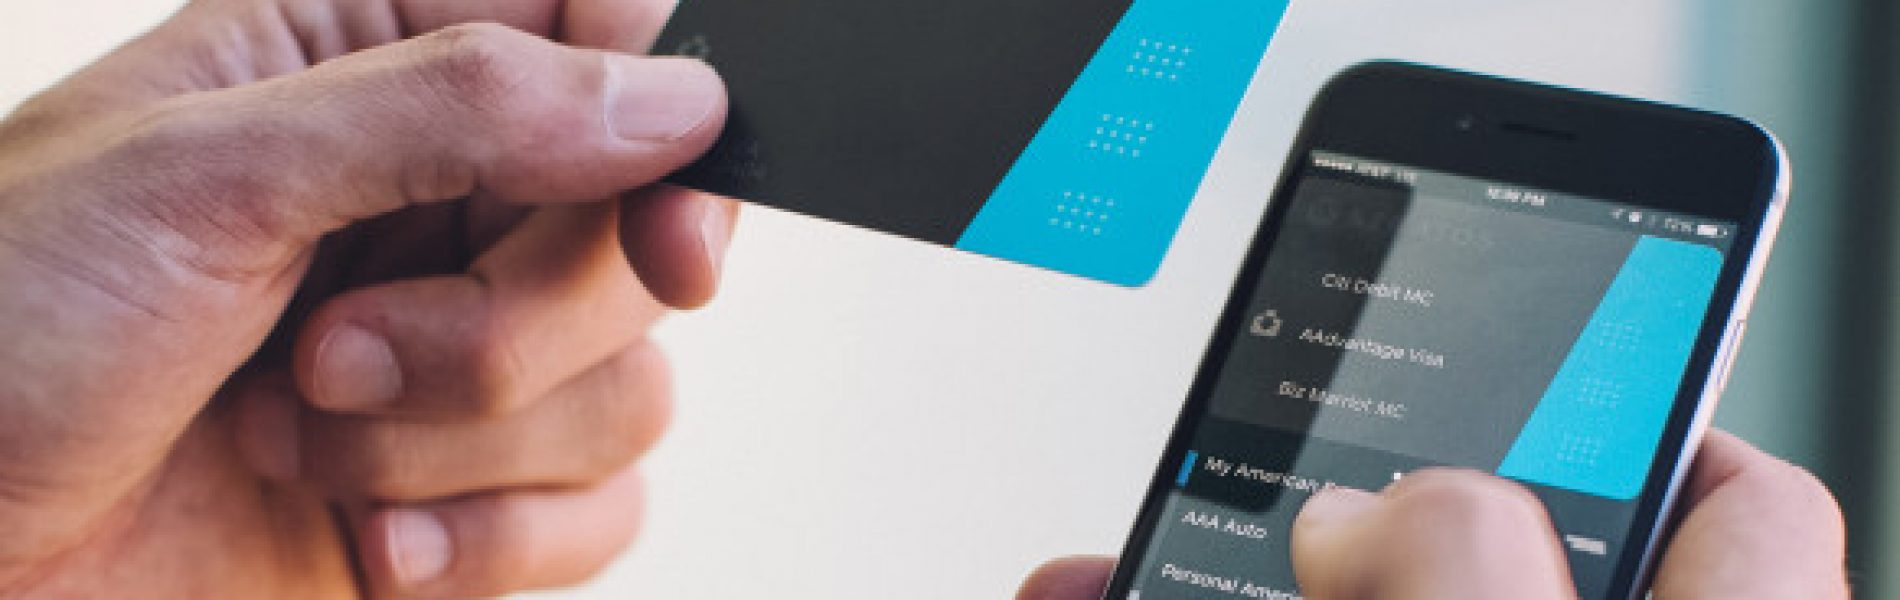 WIRED's review of the 'next-gen' credit card Stratos